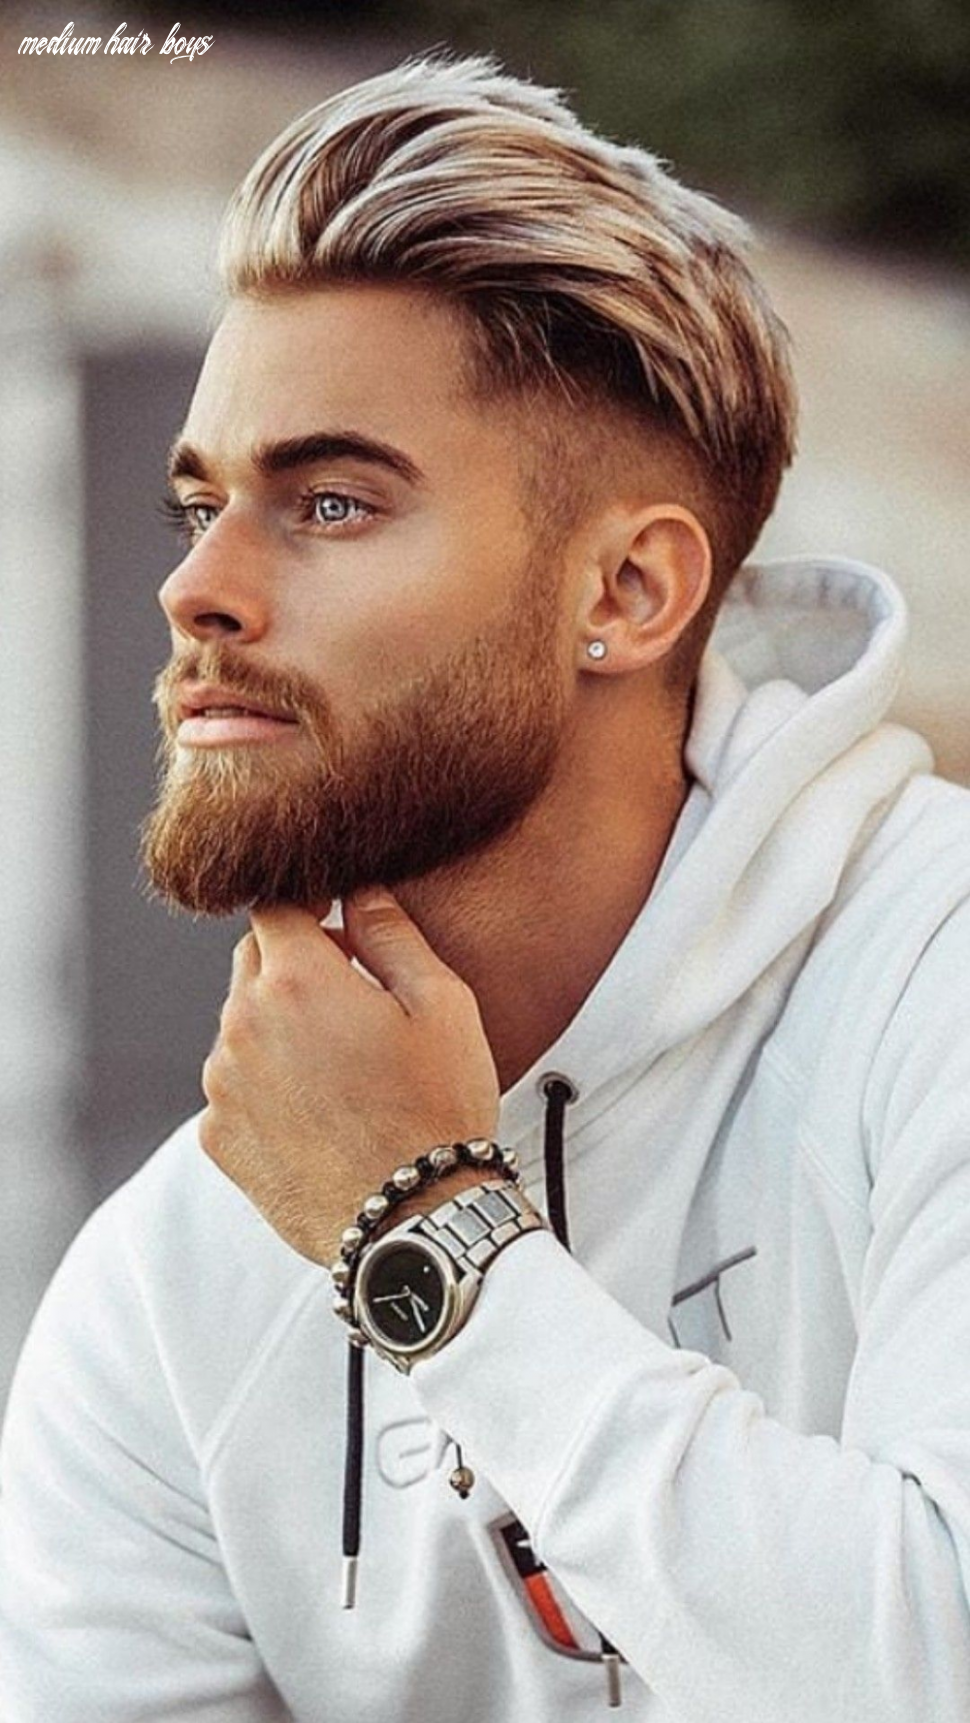 8 ultra dashing medium hairstyles for boys (with images) | mens